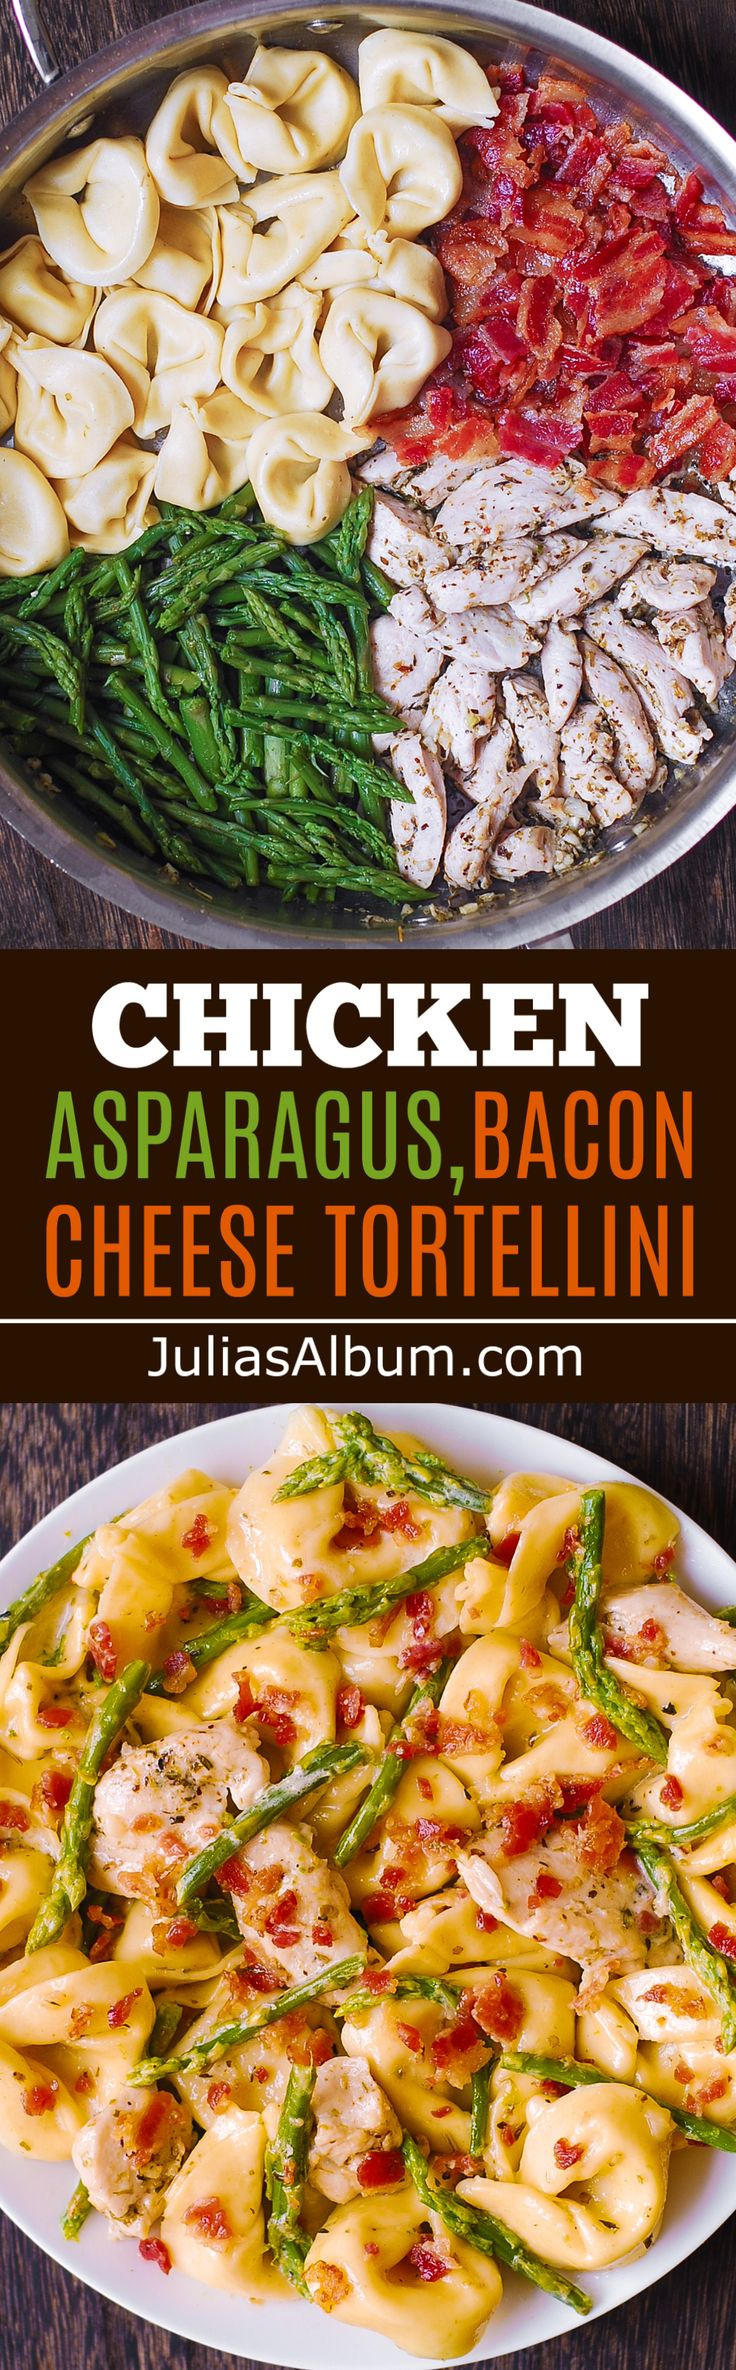 Creamy Tortellini with Asparagus, Chicken, Bacon #dinner #pasta